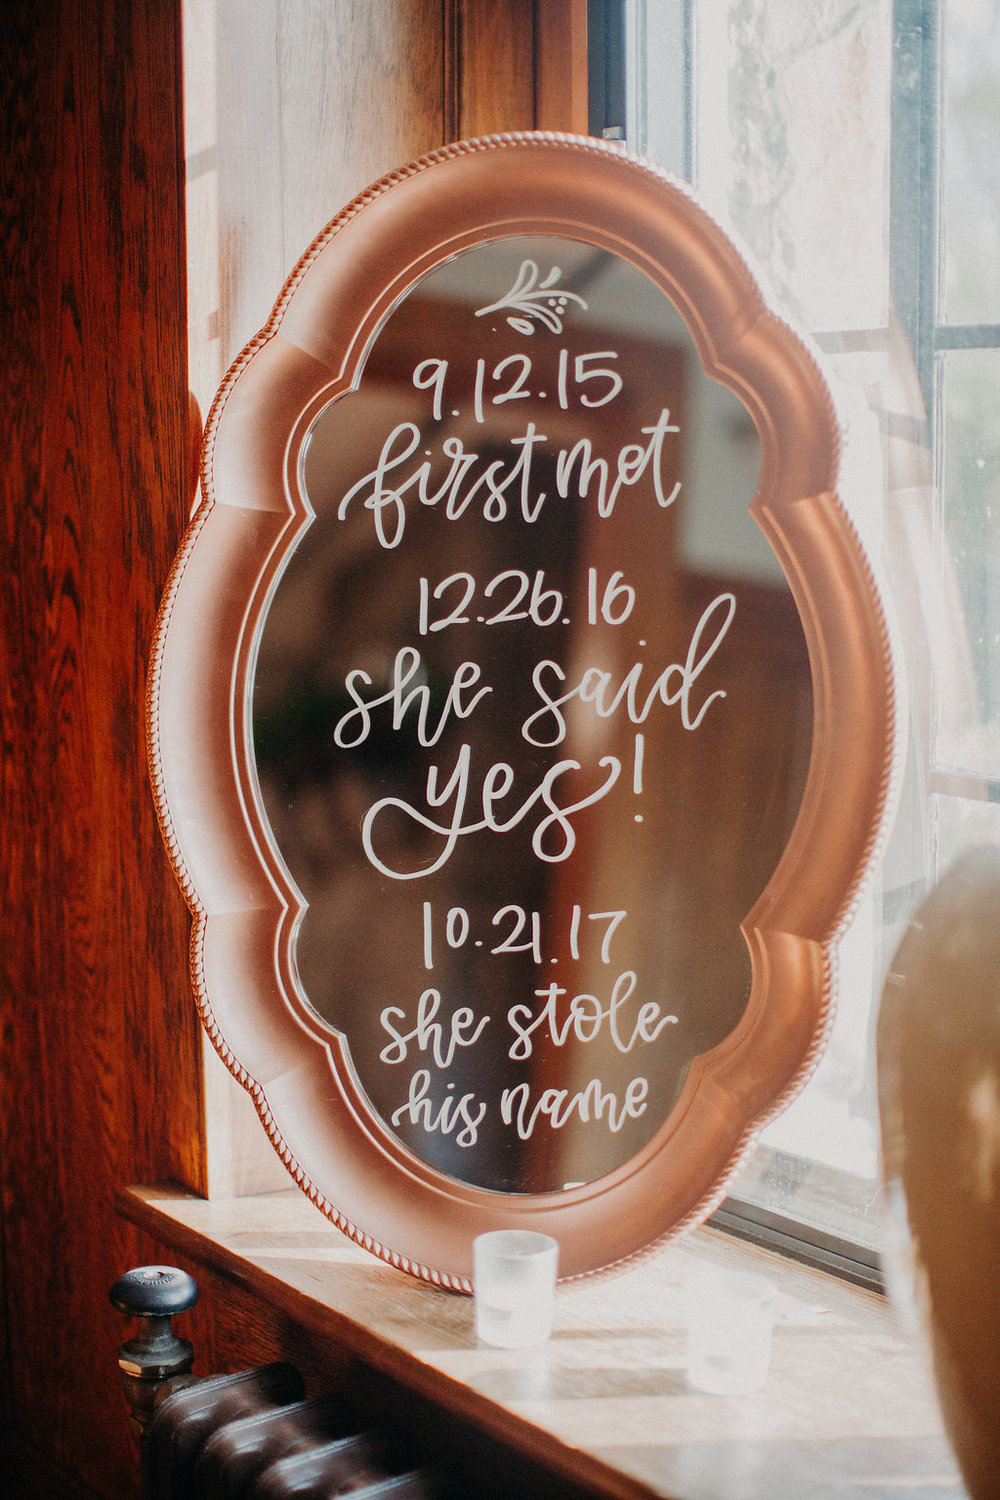 Engaged-Asheville-Joy-Unscripted-Wedding-Calligrapher-Taylor-Heery-Photography-3.jpg